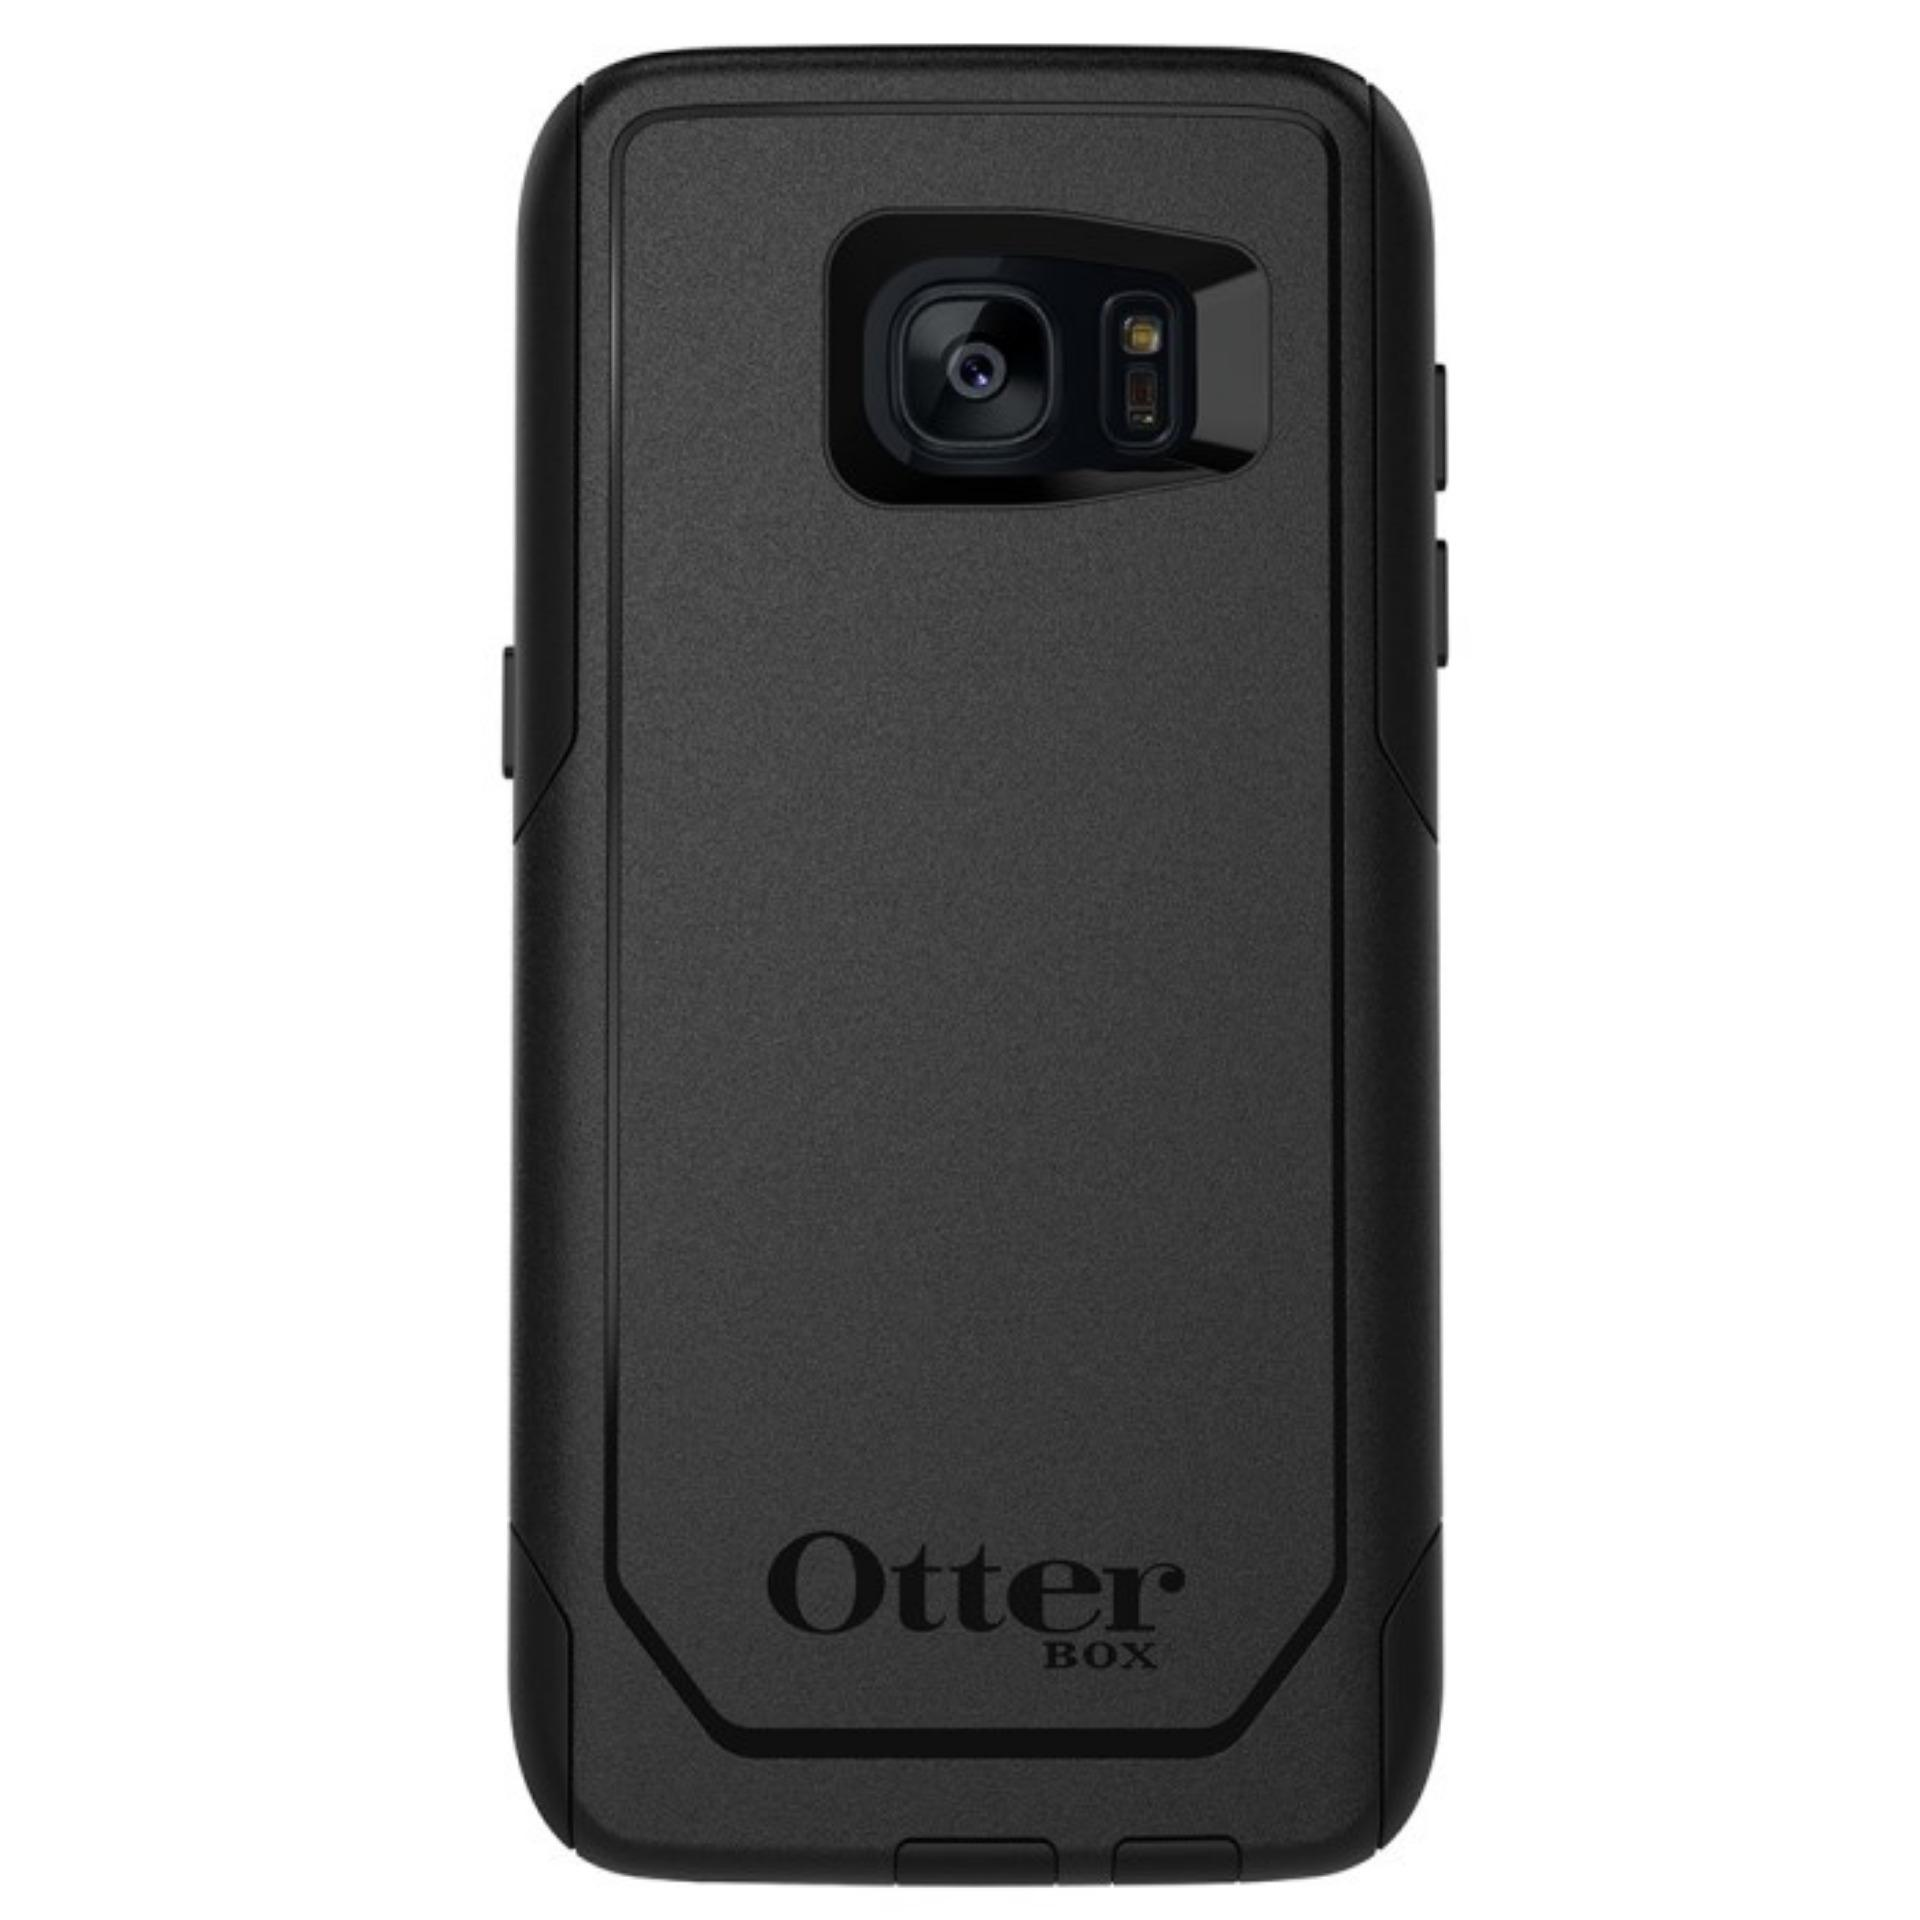 Beli Otterbox Commuter Series Samsung Galaxy S7 Edge Black Cicilan